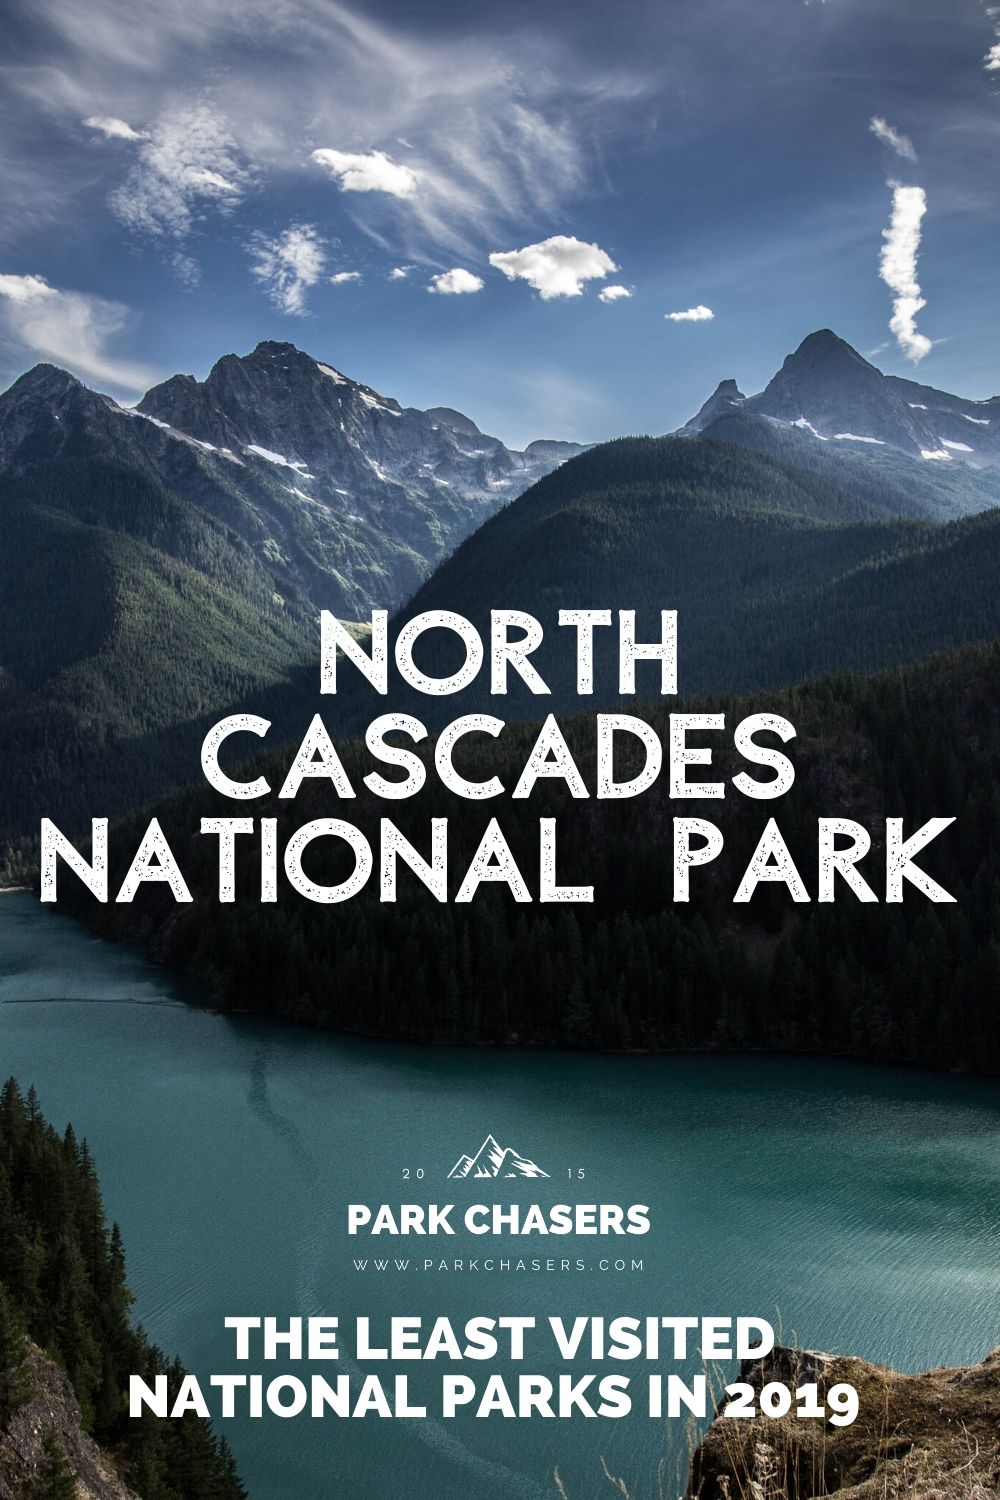 North Cascades National Park in Washington